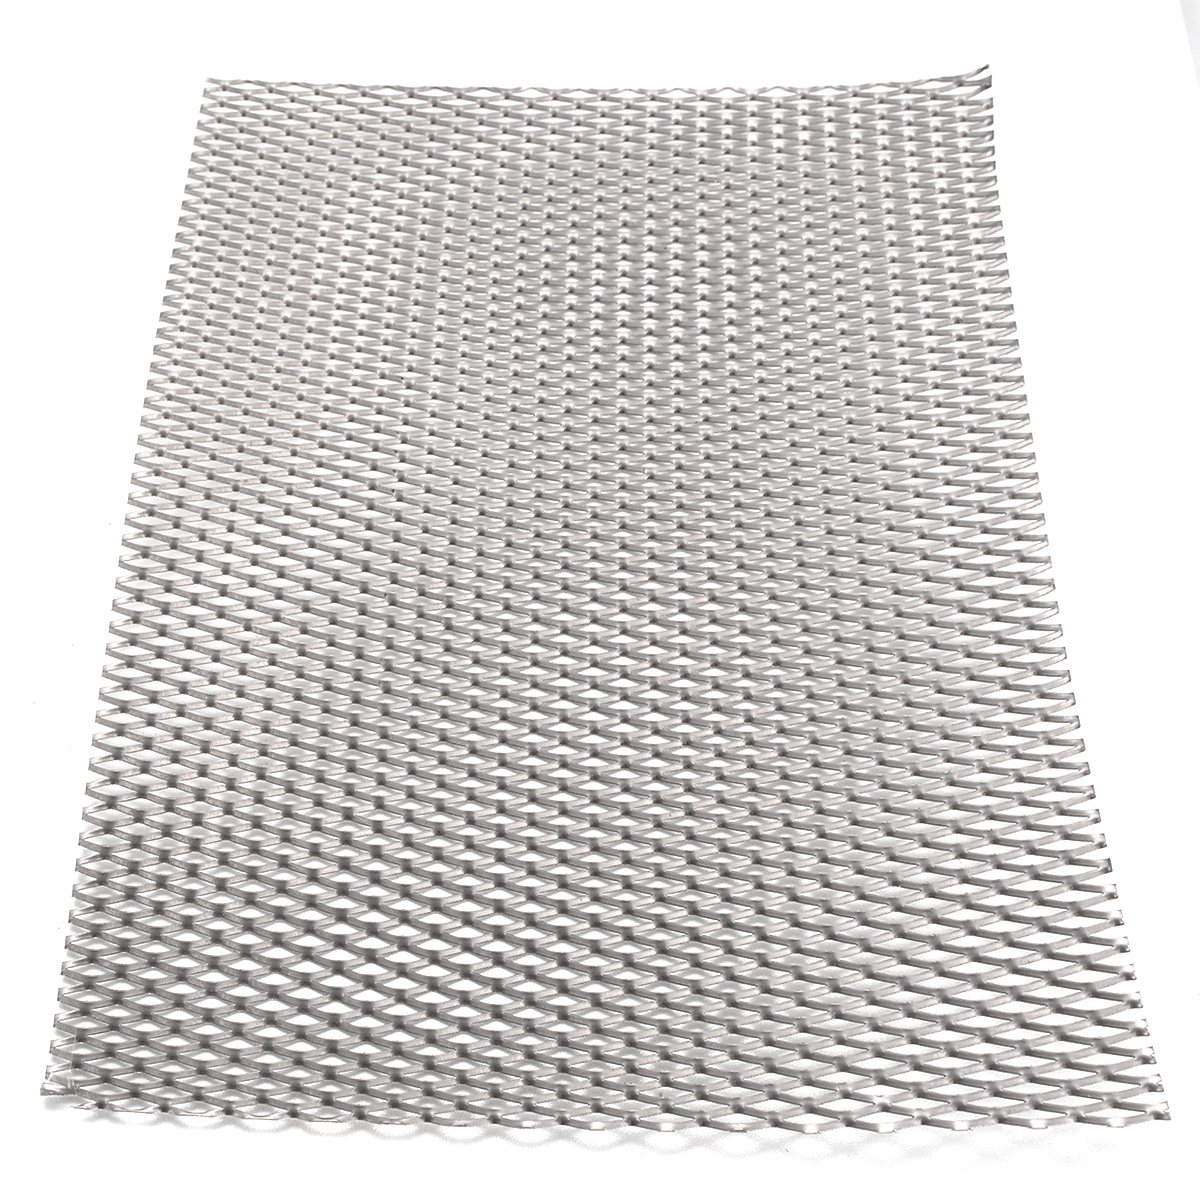 Titanium Sheet Hole Type Metal Titanium Mesh Perforated Plate Expanded Size 200mm*300mm*0.5mm For Chemical Machinery